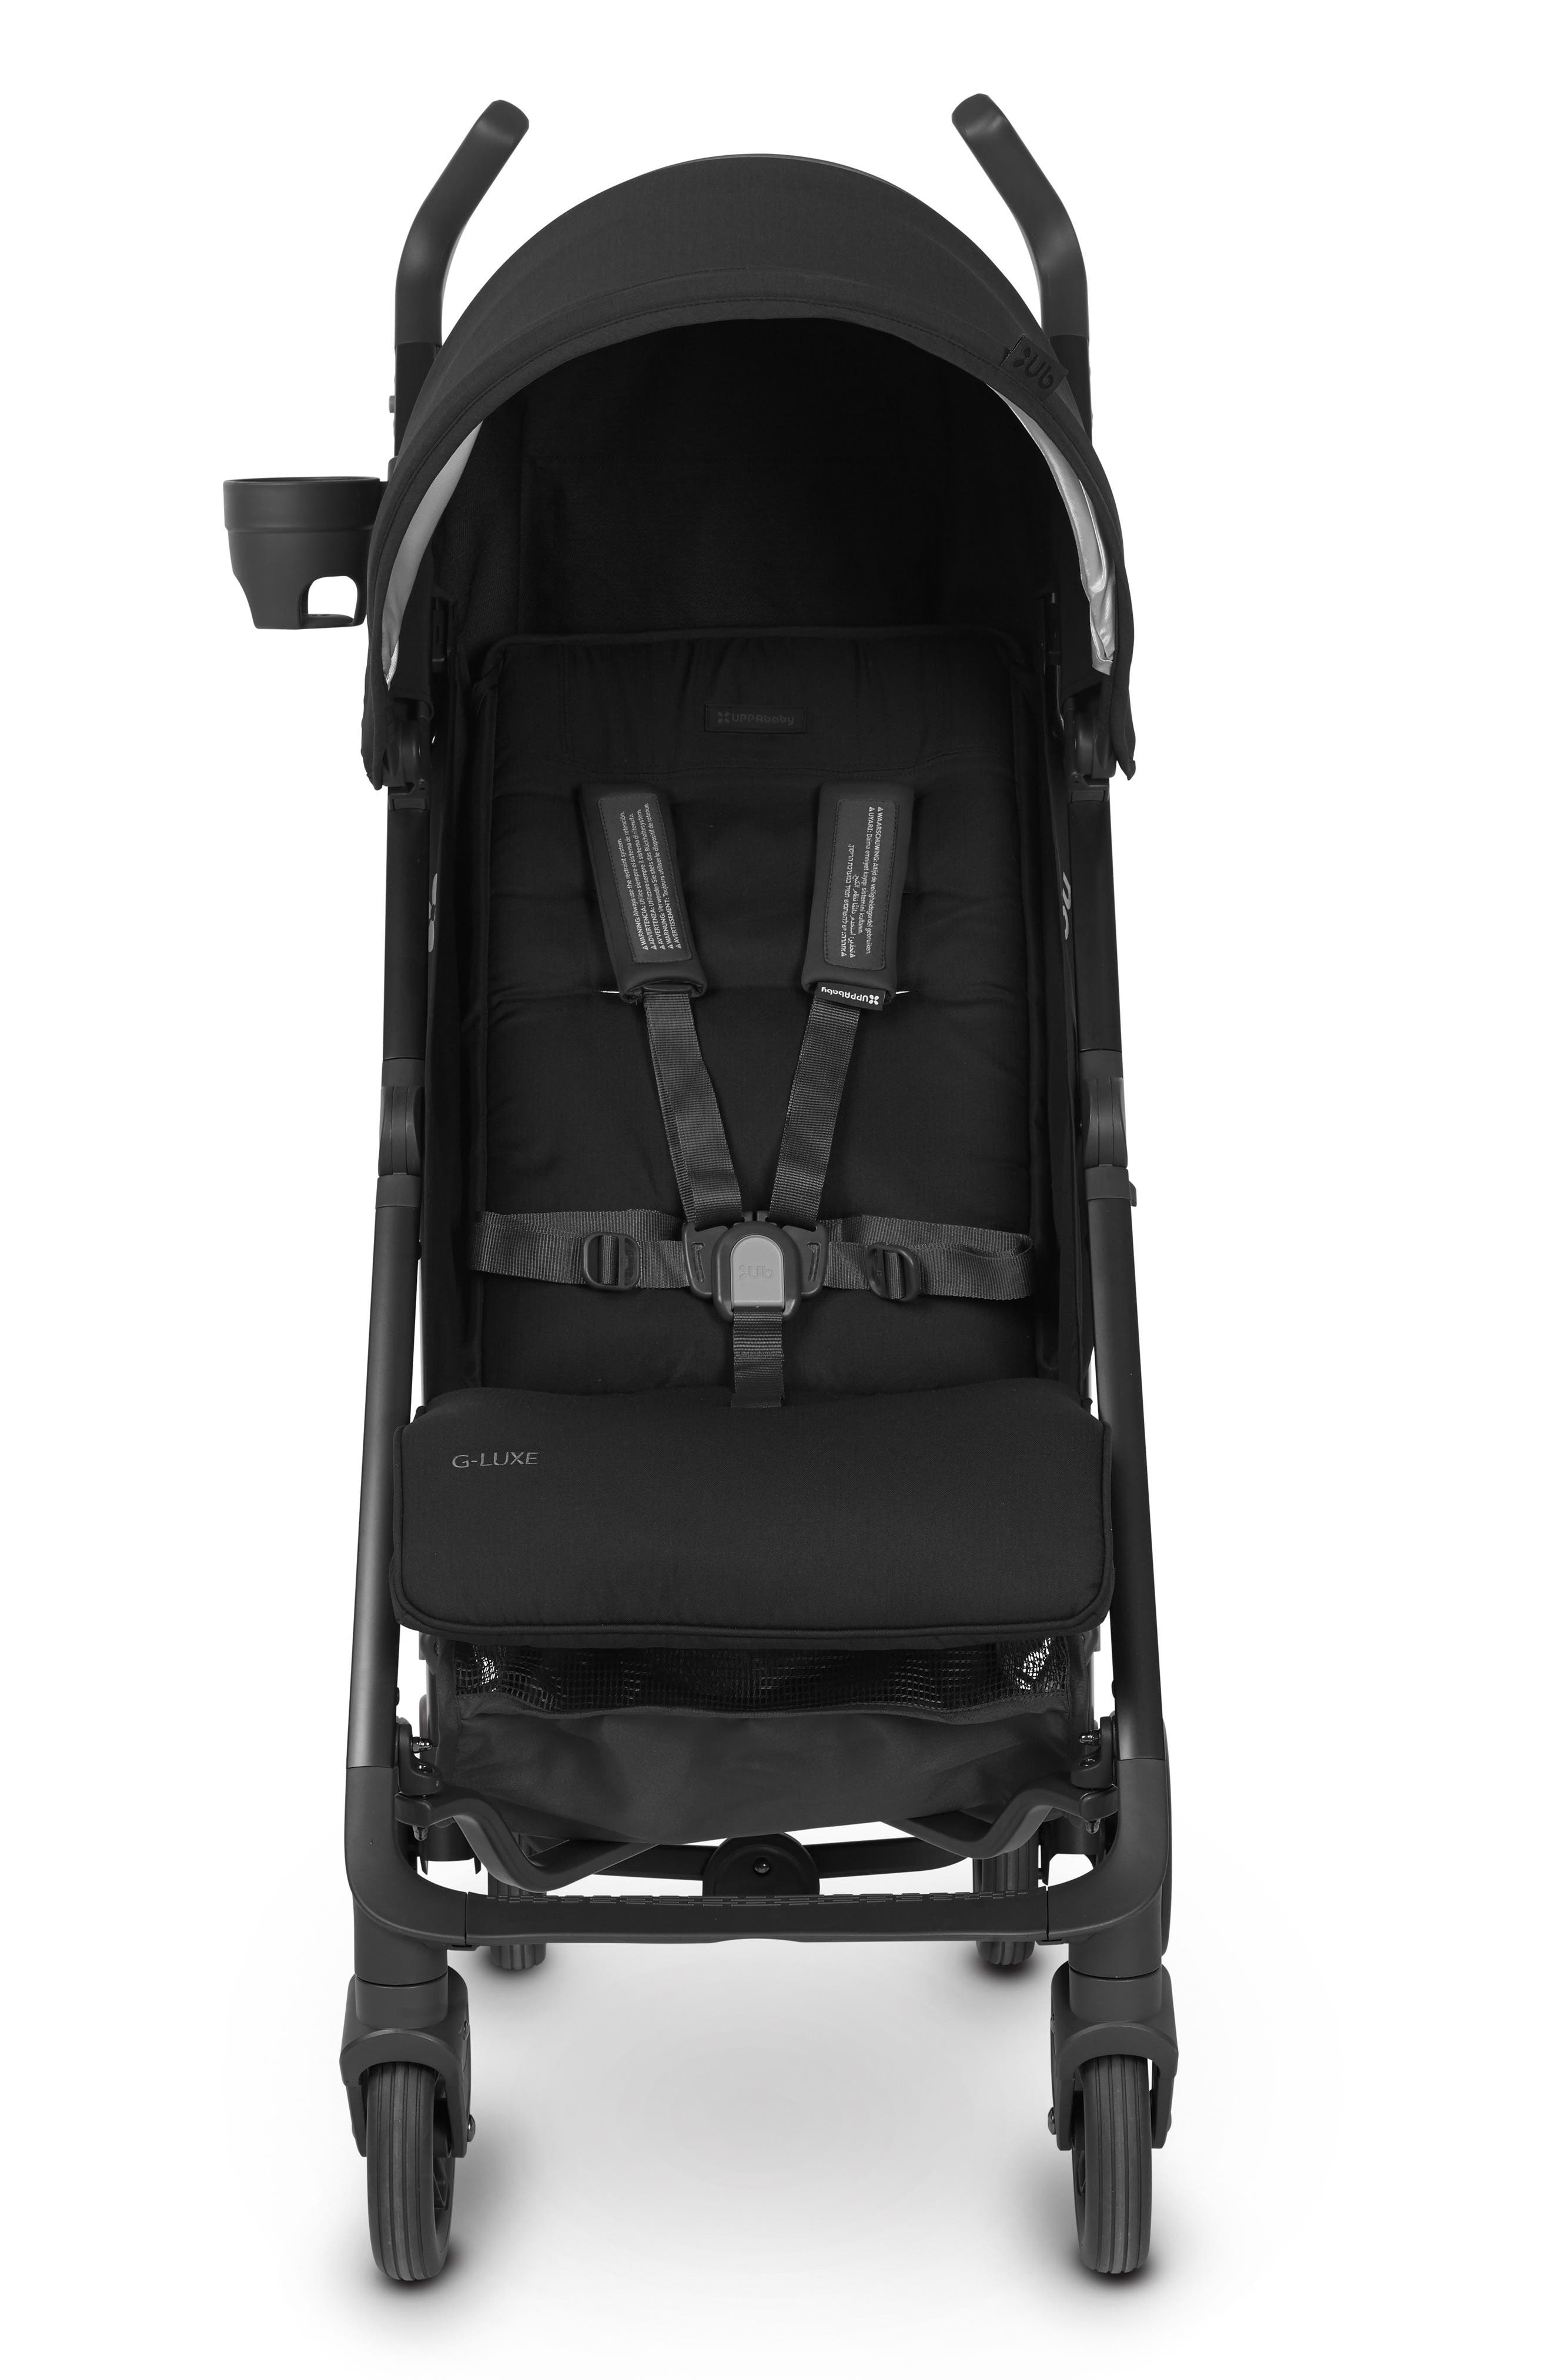 Alternate Image 2  - UPPAbaby G-LUXE 2018 Reclining Umbrella Stroller